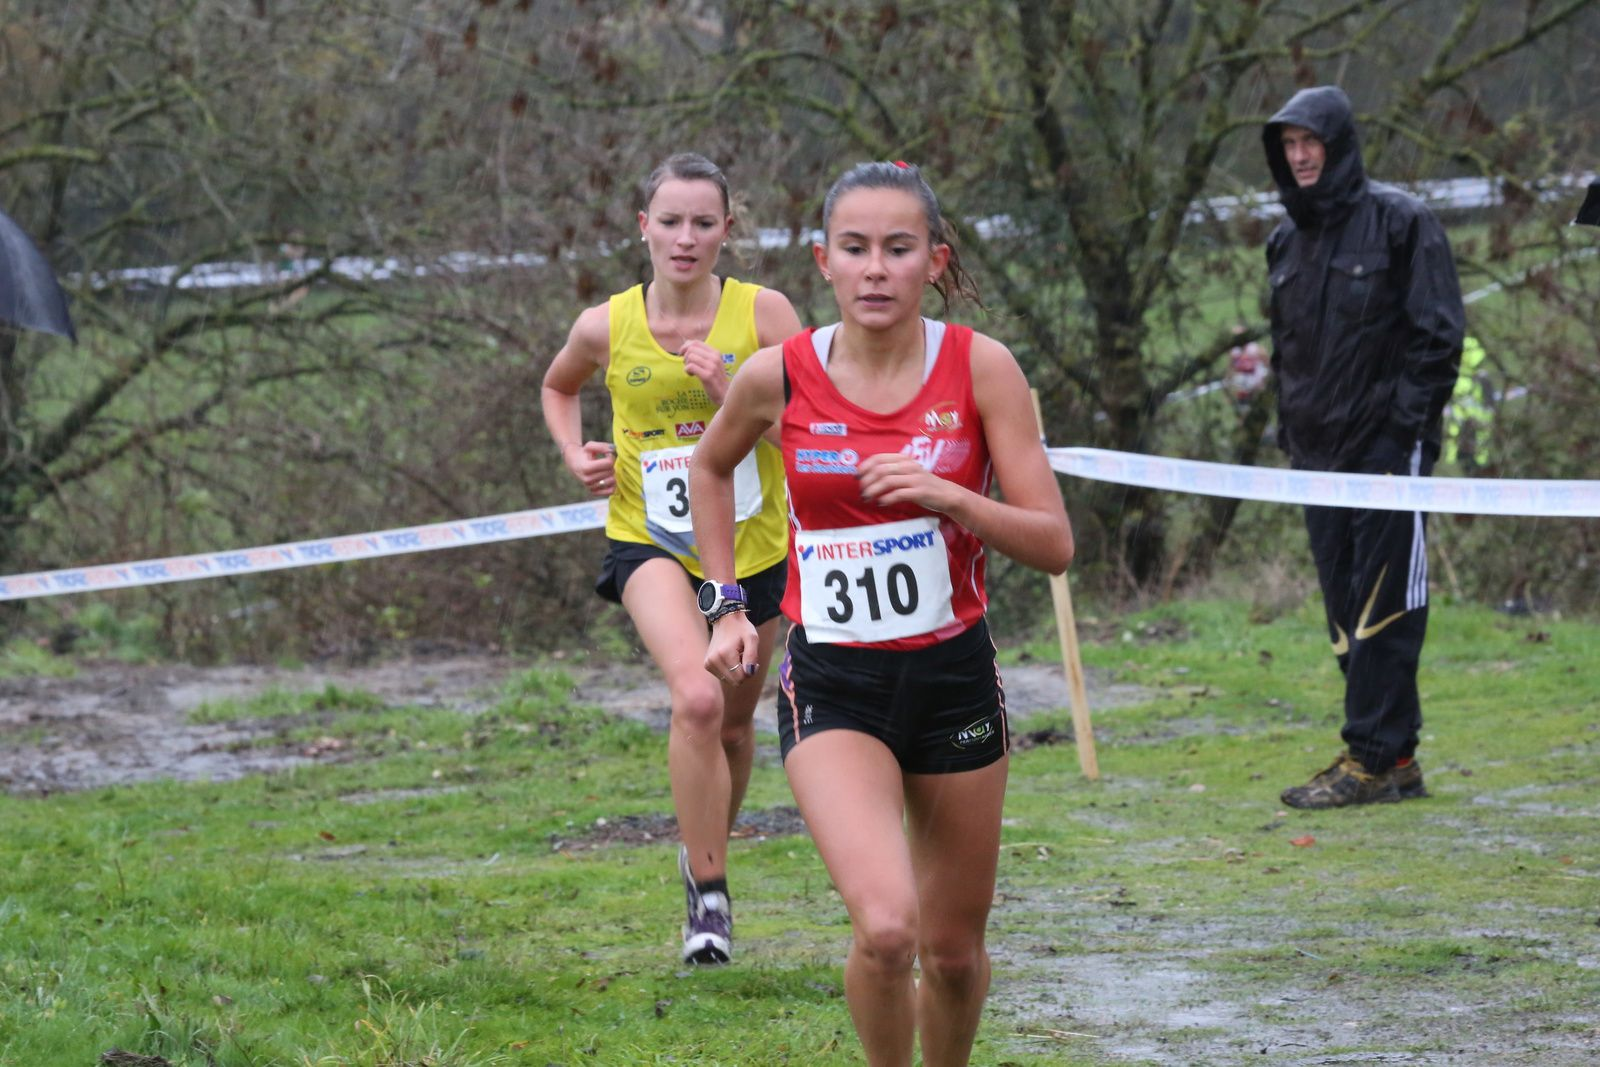 Championnats de Vendée de cross court